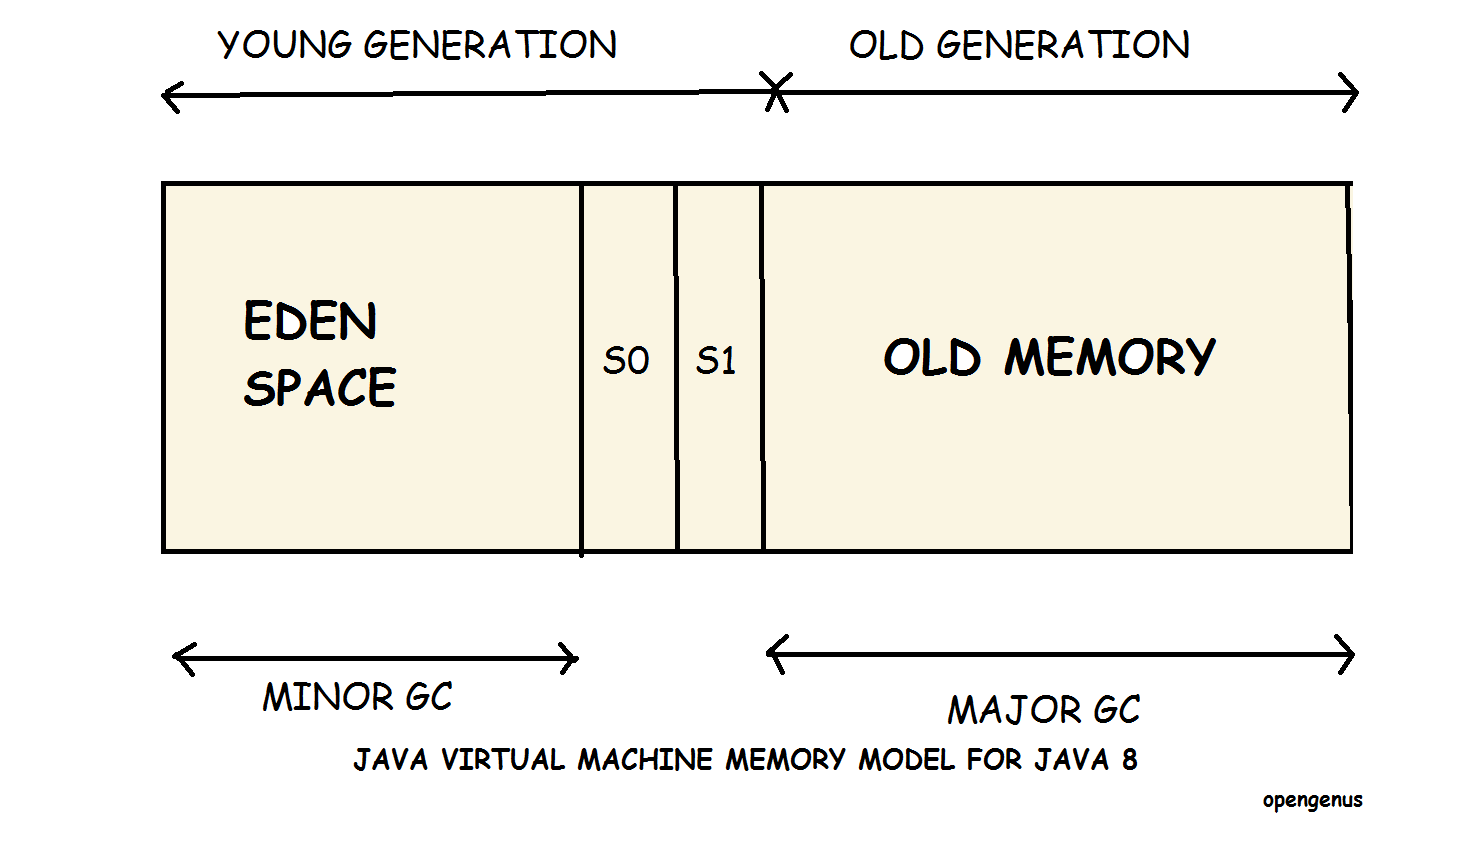 Java Virtual Machine Memory Model for Java 8